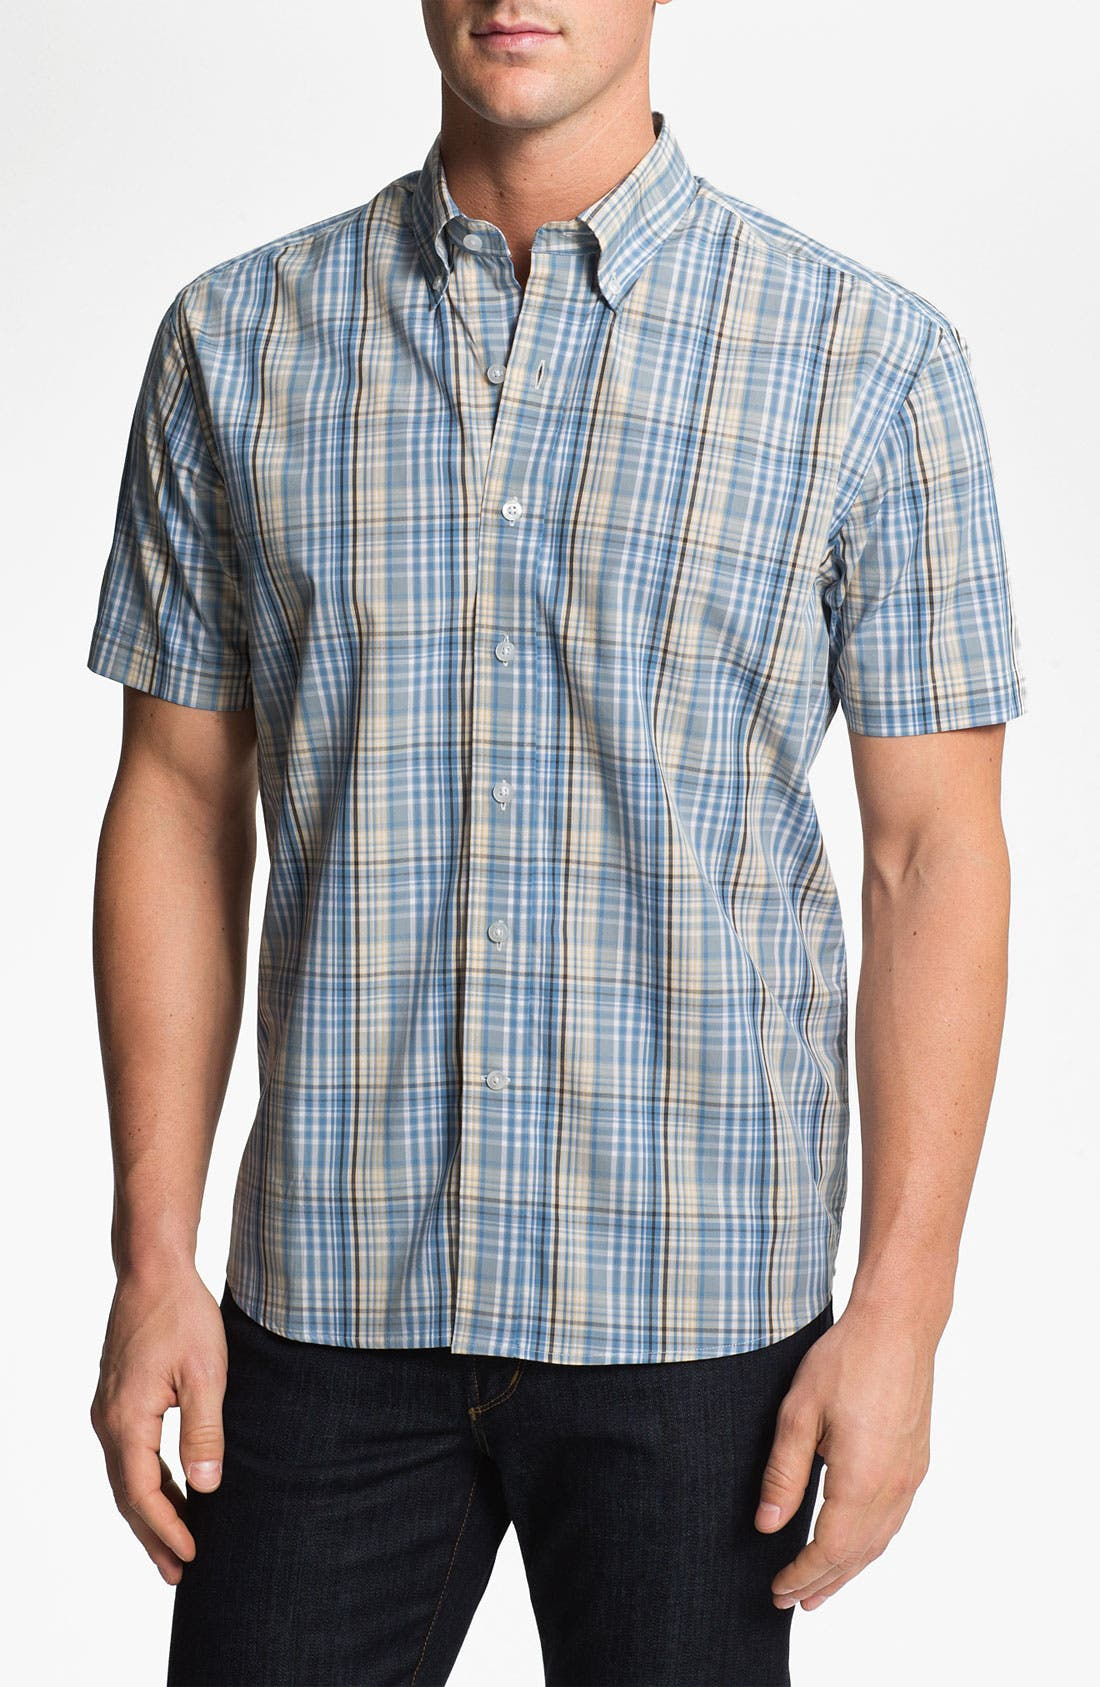 Alternate Image 1 Selected - Cutter & Buck 'Leary' Plaid Sport Shirt (Big & Tall)